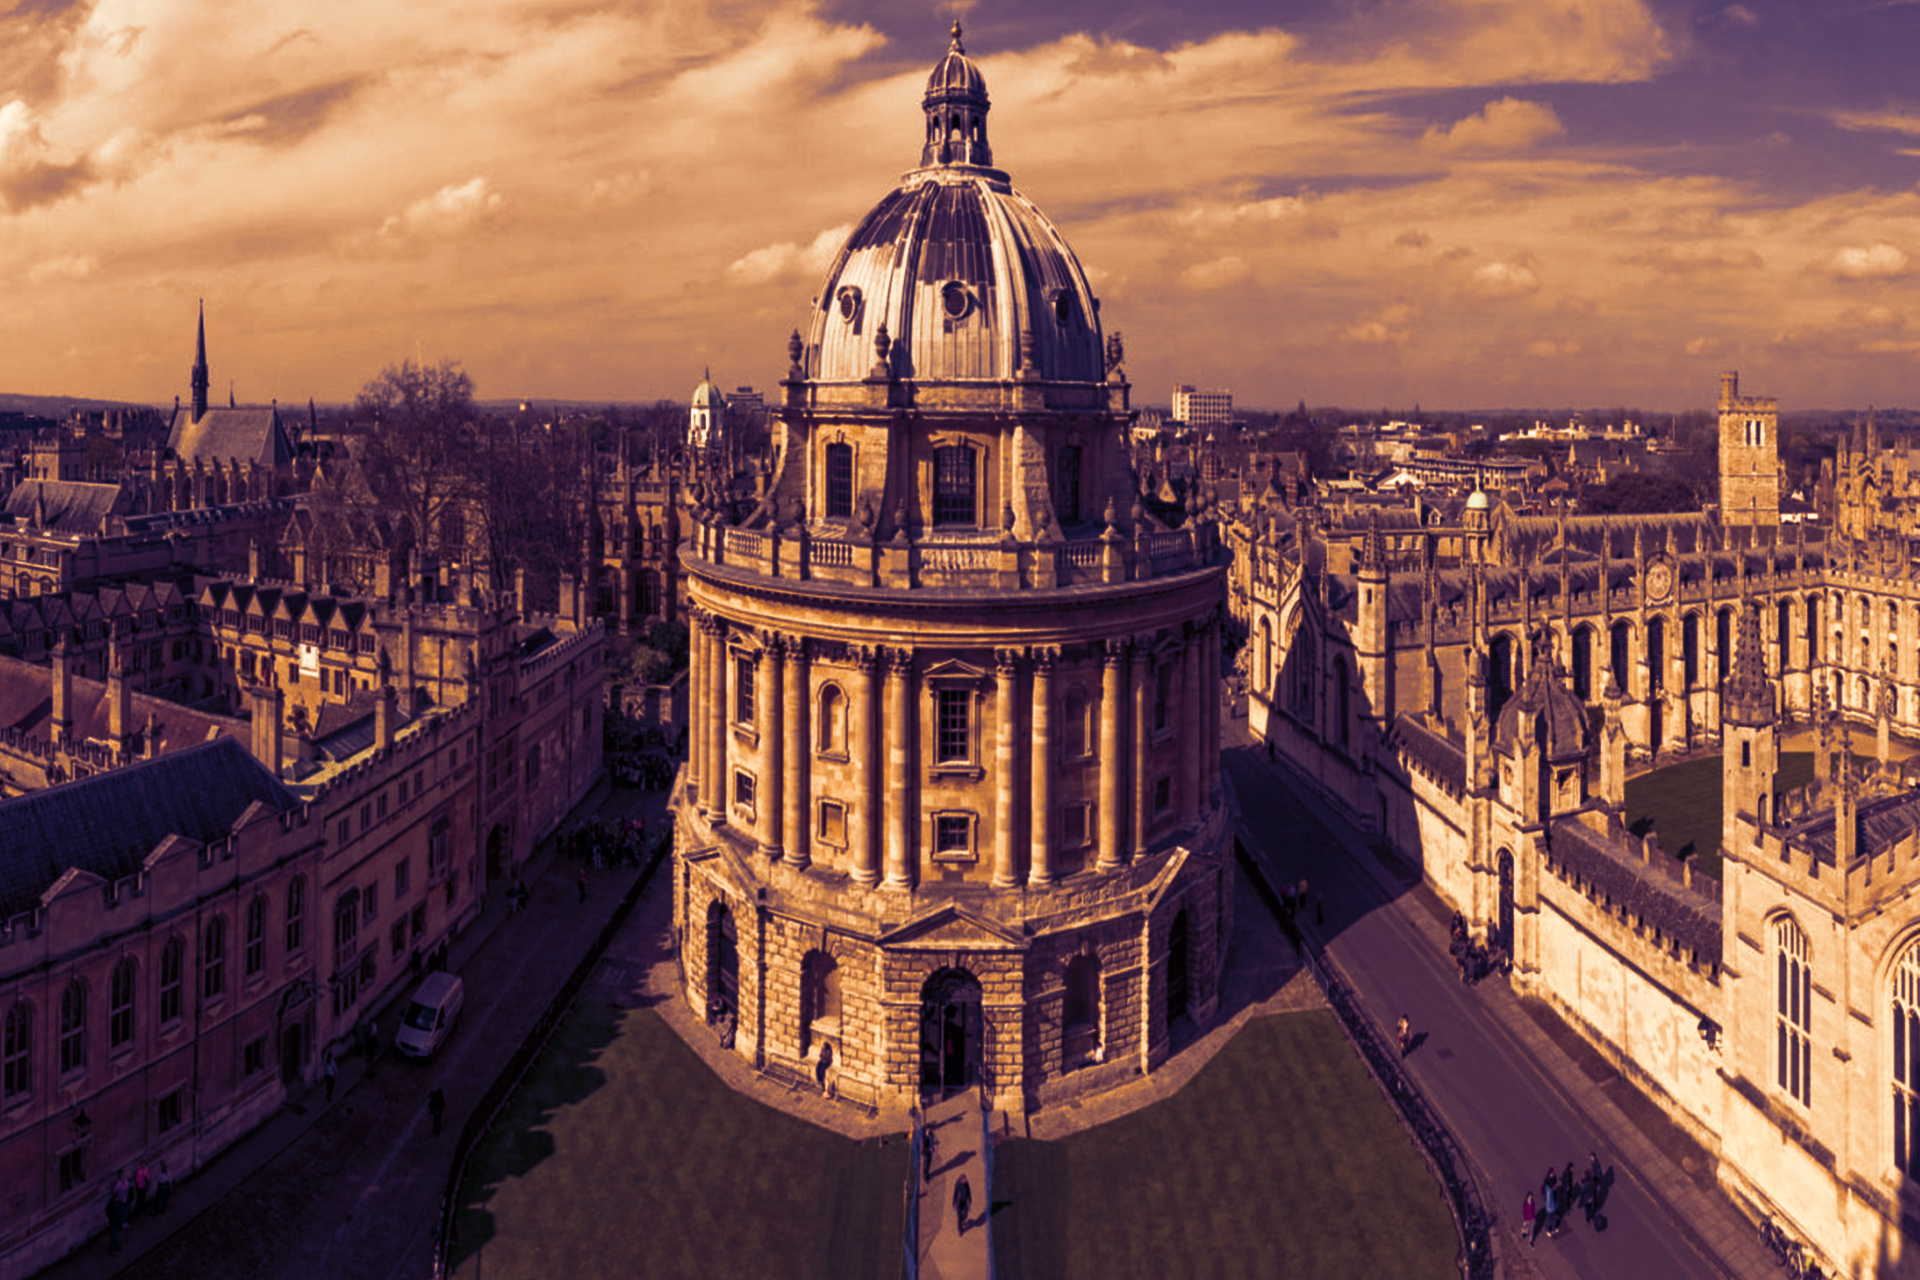 Oxford University, One of the Oldest Universities in the world.